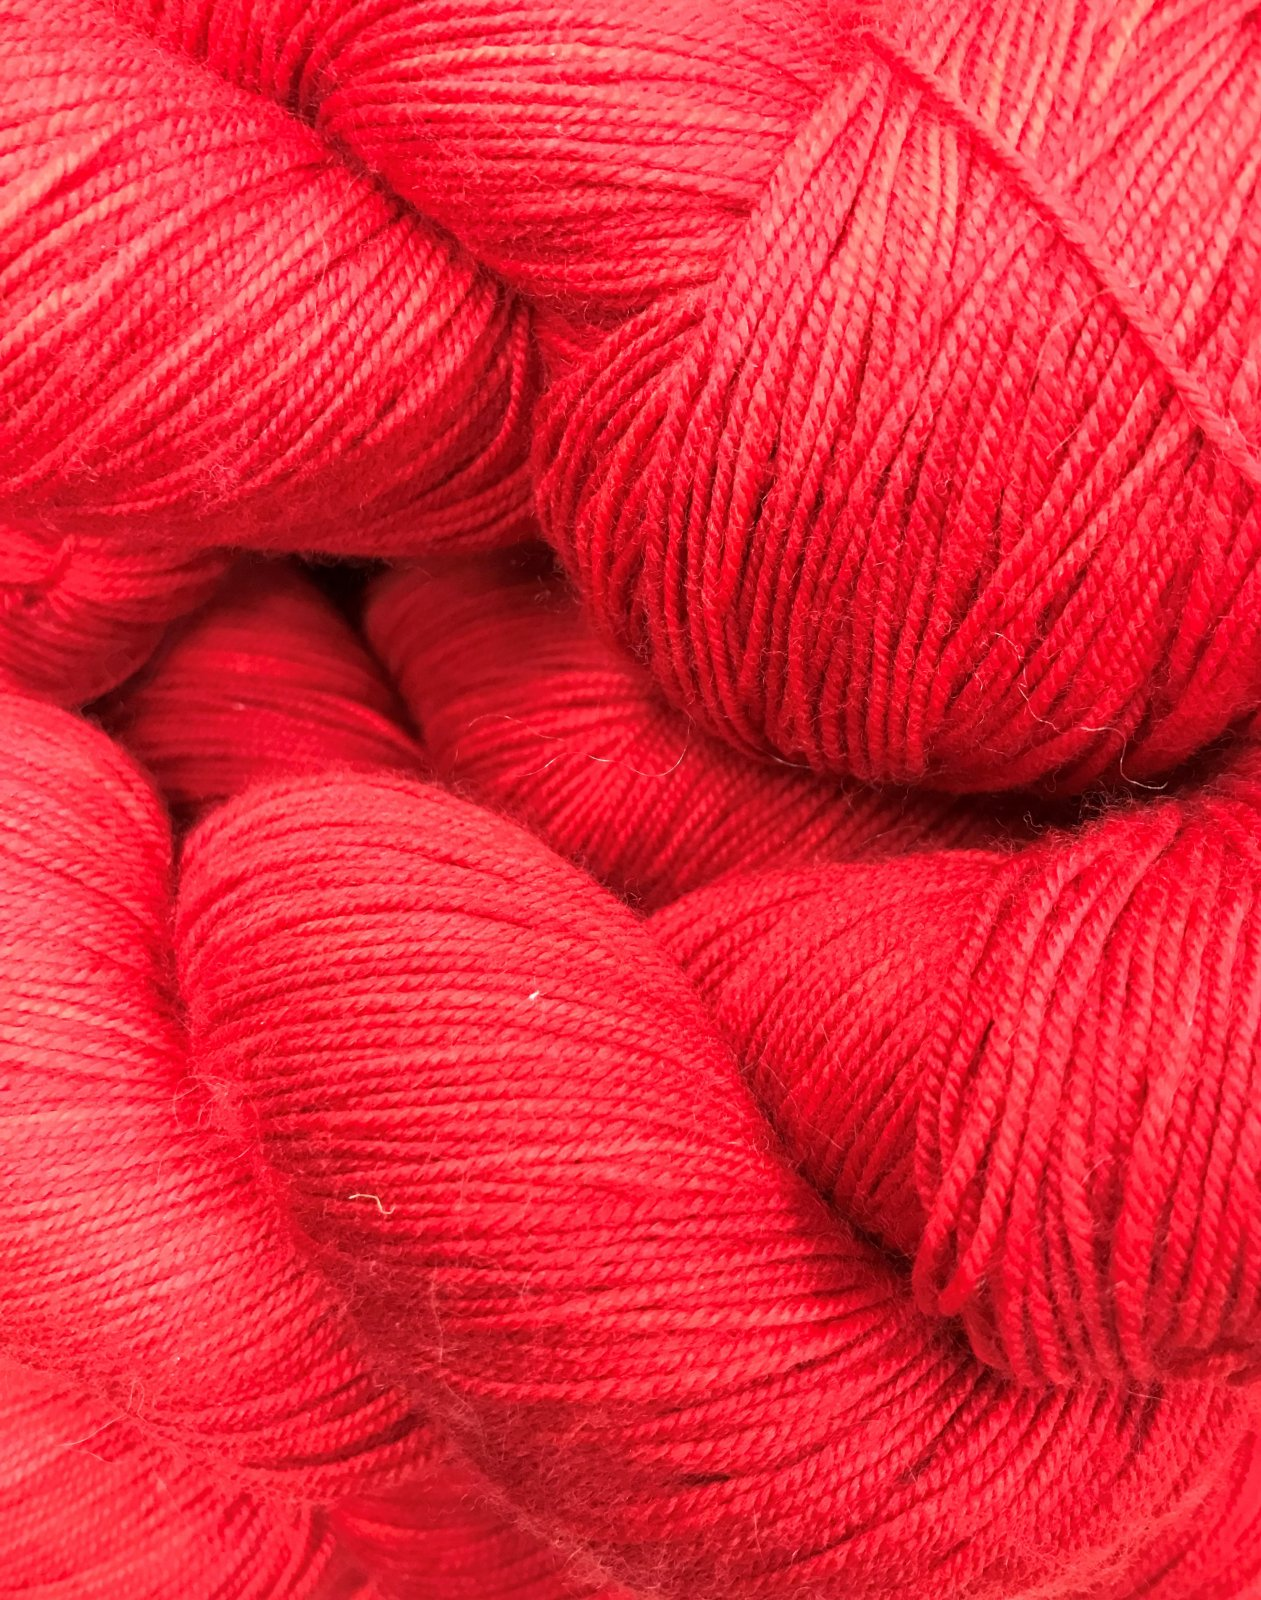 Bright Red 37, Lace Merino Superwash extra fine 430y, 6.5sts=1on 3US